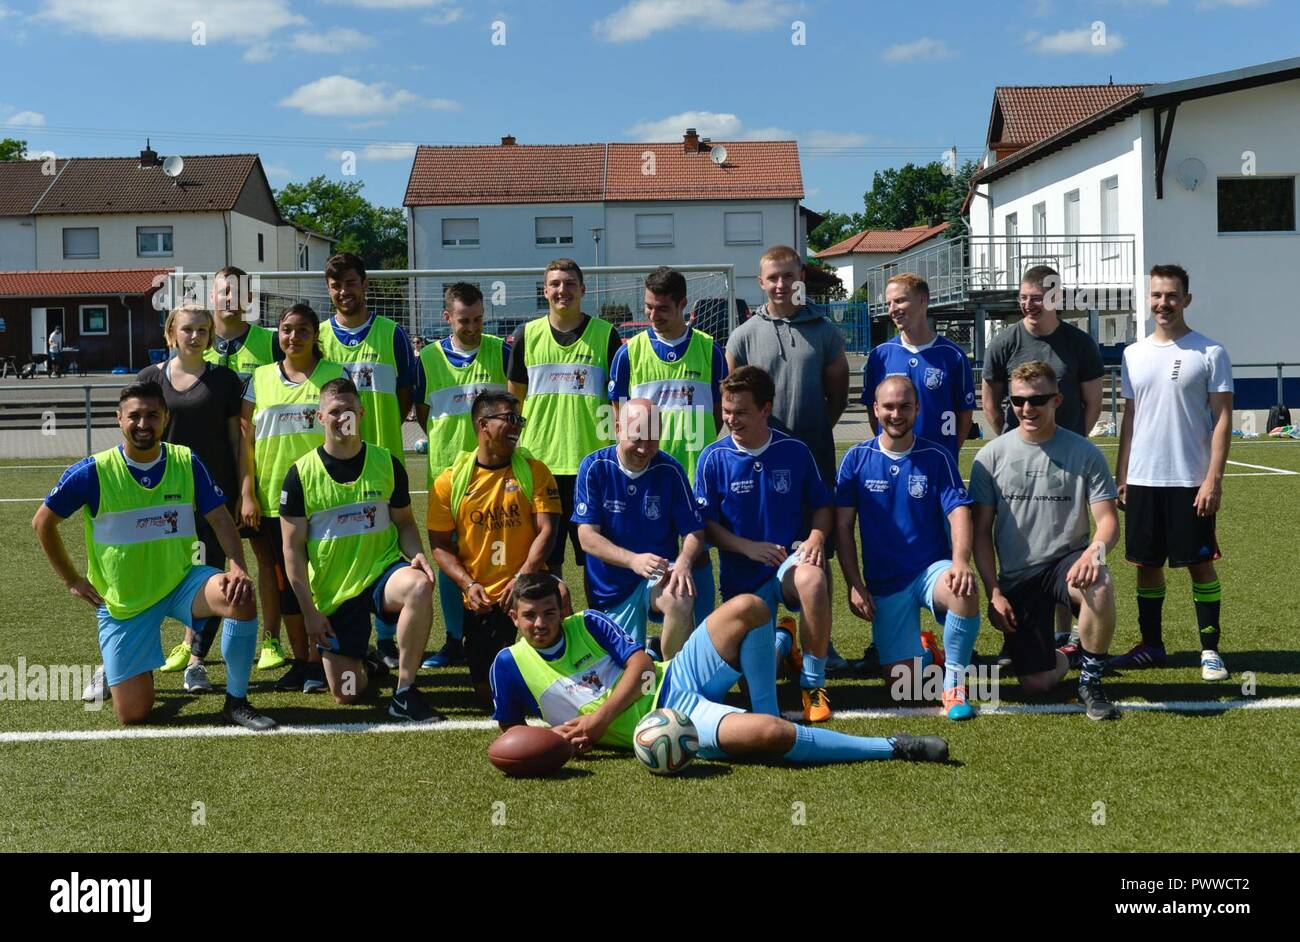 Ramstein Air Base Airmen and Fussballverein Ramstein Fußball Club A-Team pose for a photo during the Grassroots program sports day, at FV Olympia Field in Ramstein Misenbach, Germany, June 24, 2017. More than 25 Airmen and soccer players volunteered for the event to help build relations between service members and the local community. - Stock Image